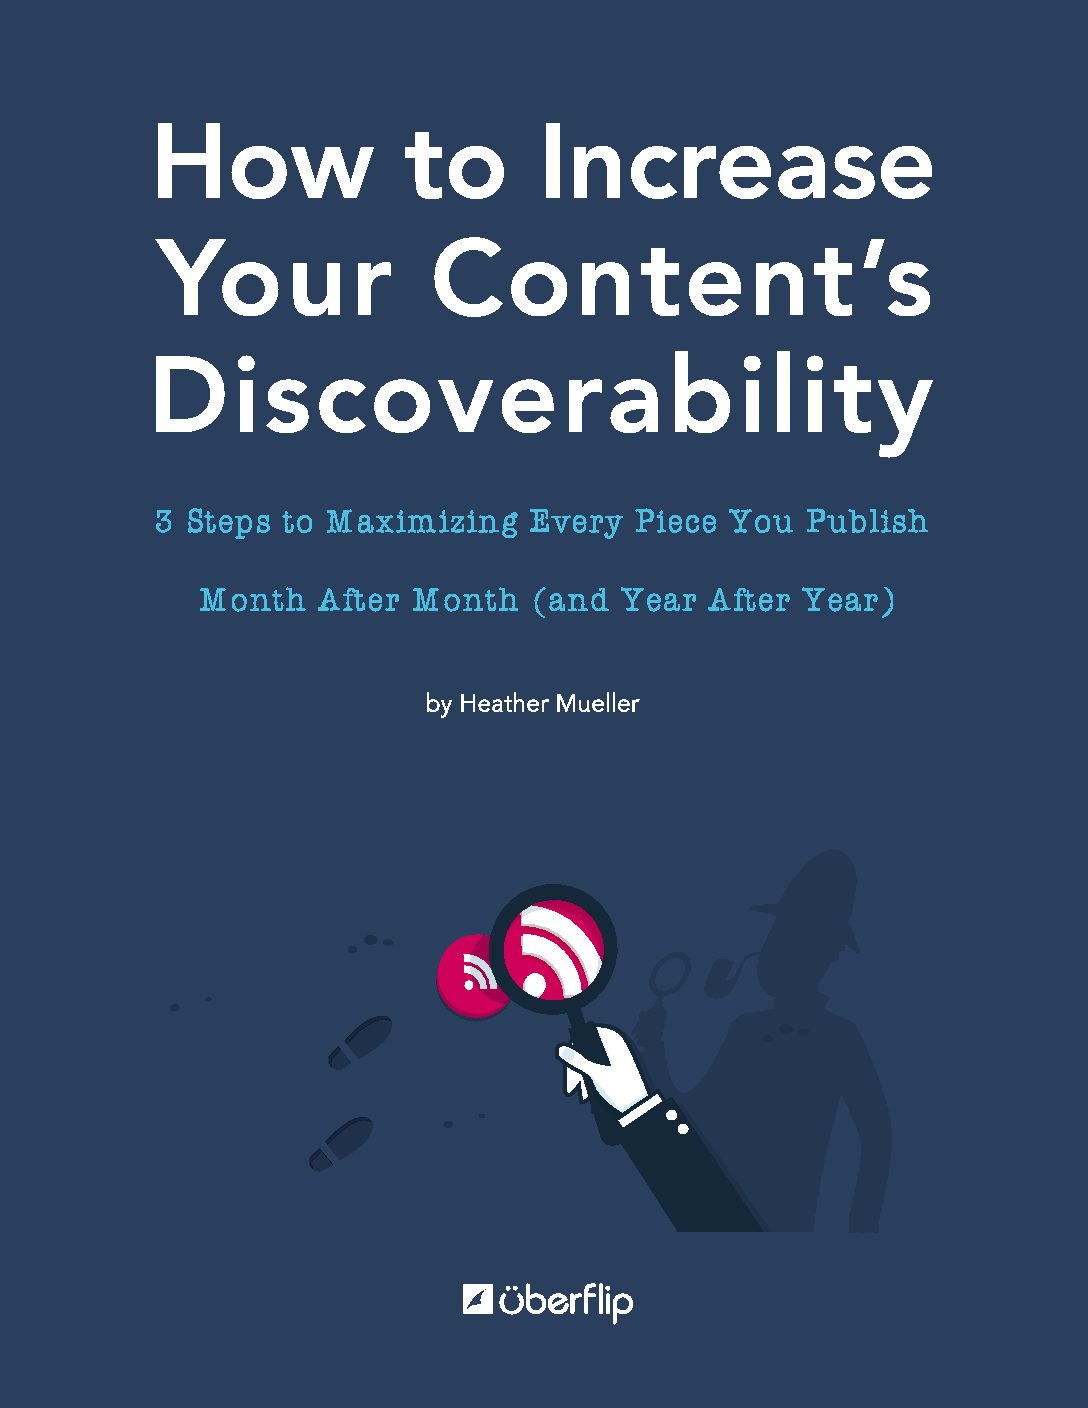 How-to-increase-your-content-s-discoverability